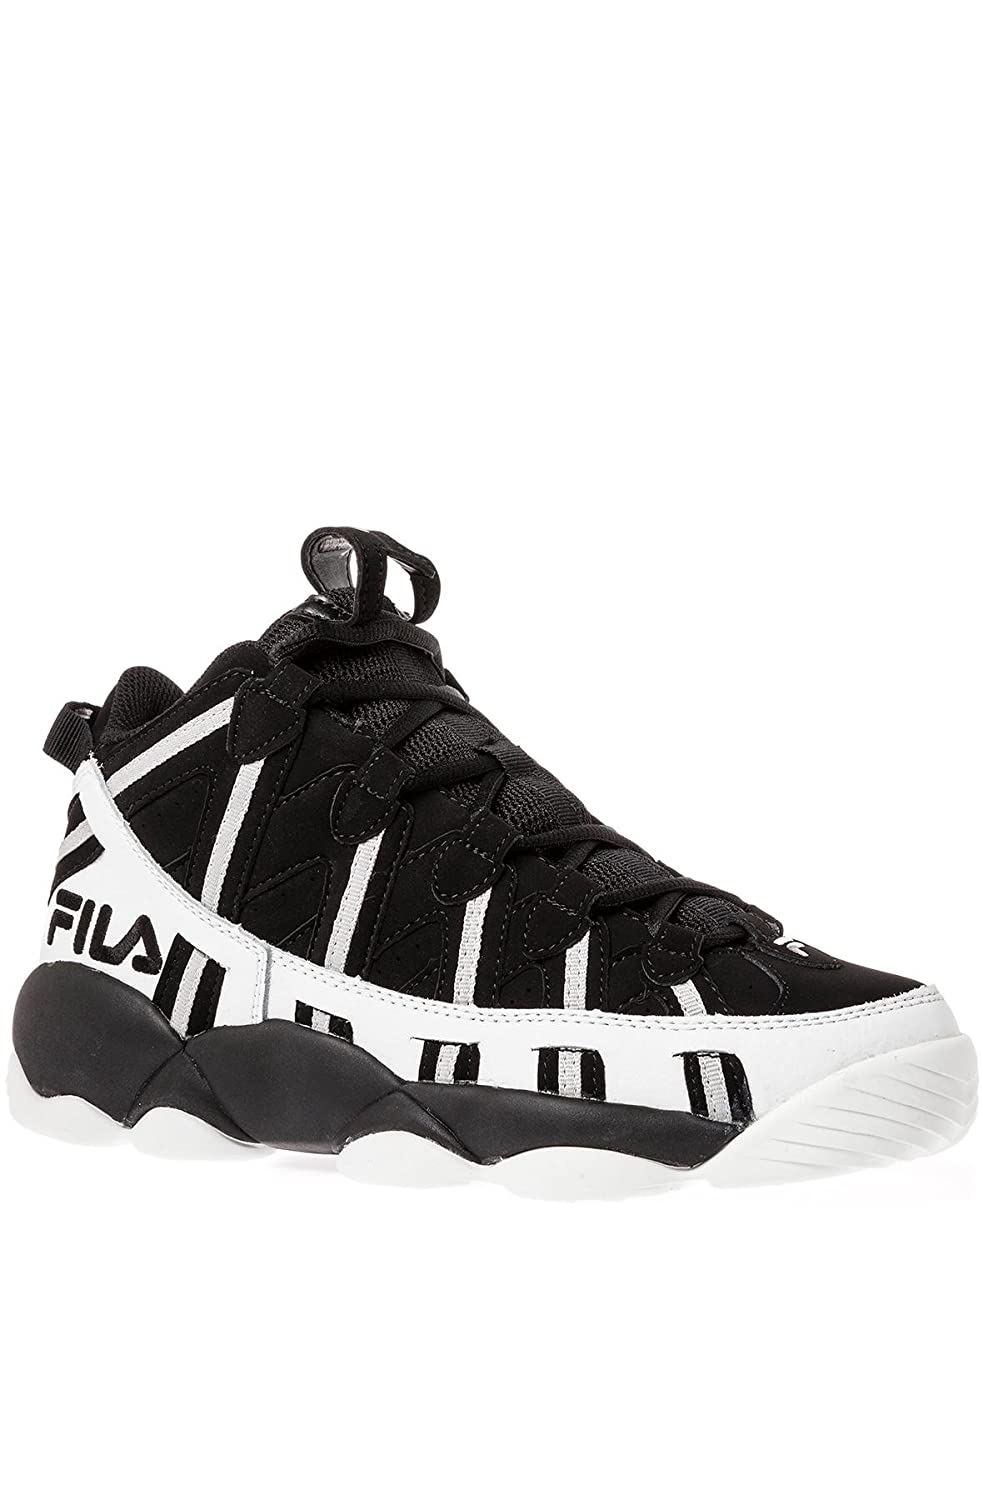 c0f624689013 Fila Men s Spaghetti Sneaker 8 Black  Amazon.co.uk  Shoes   Bags